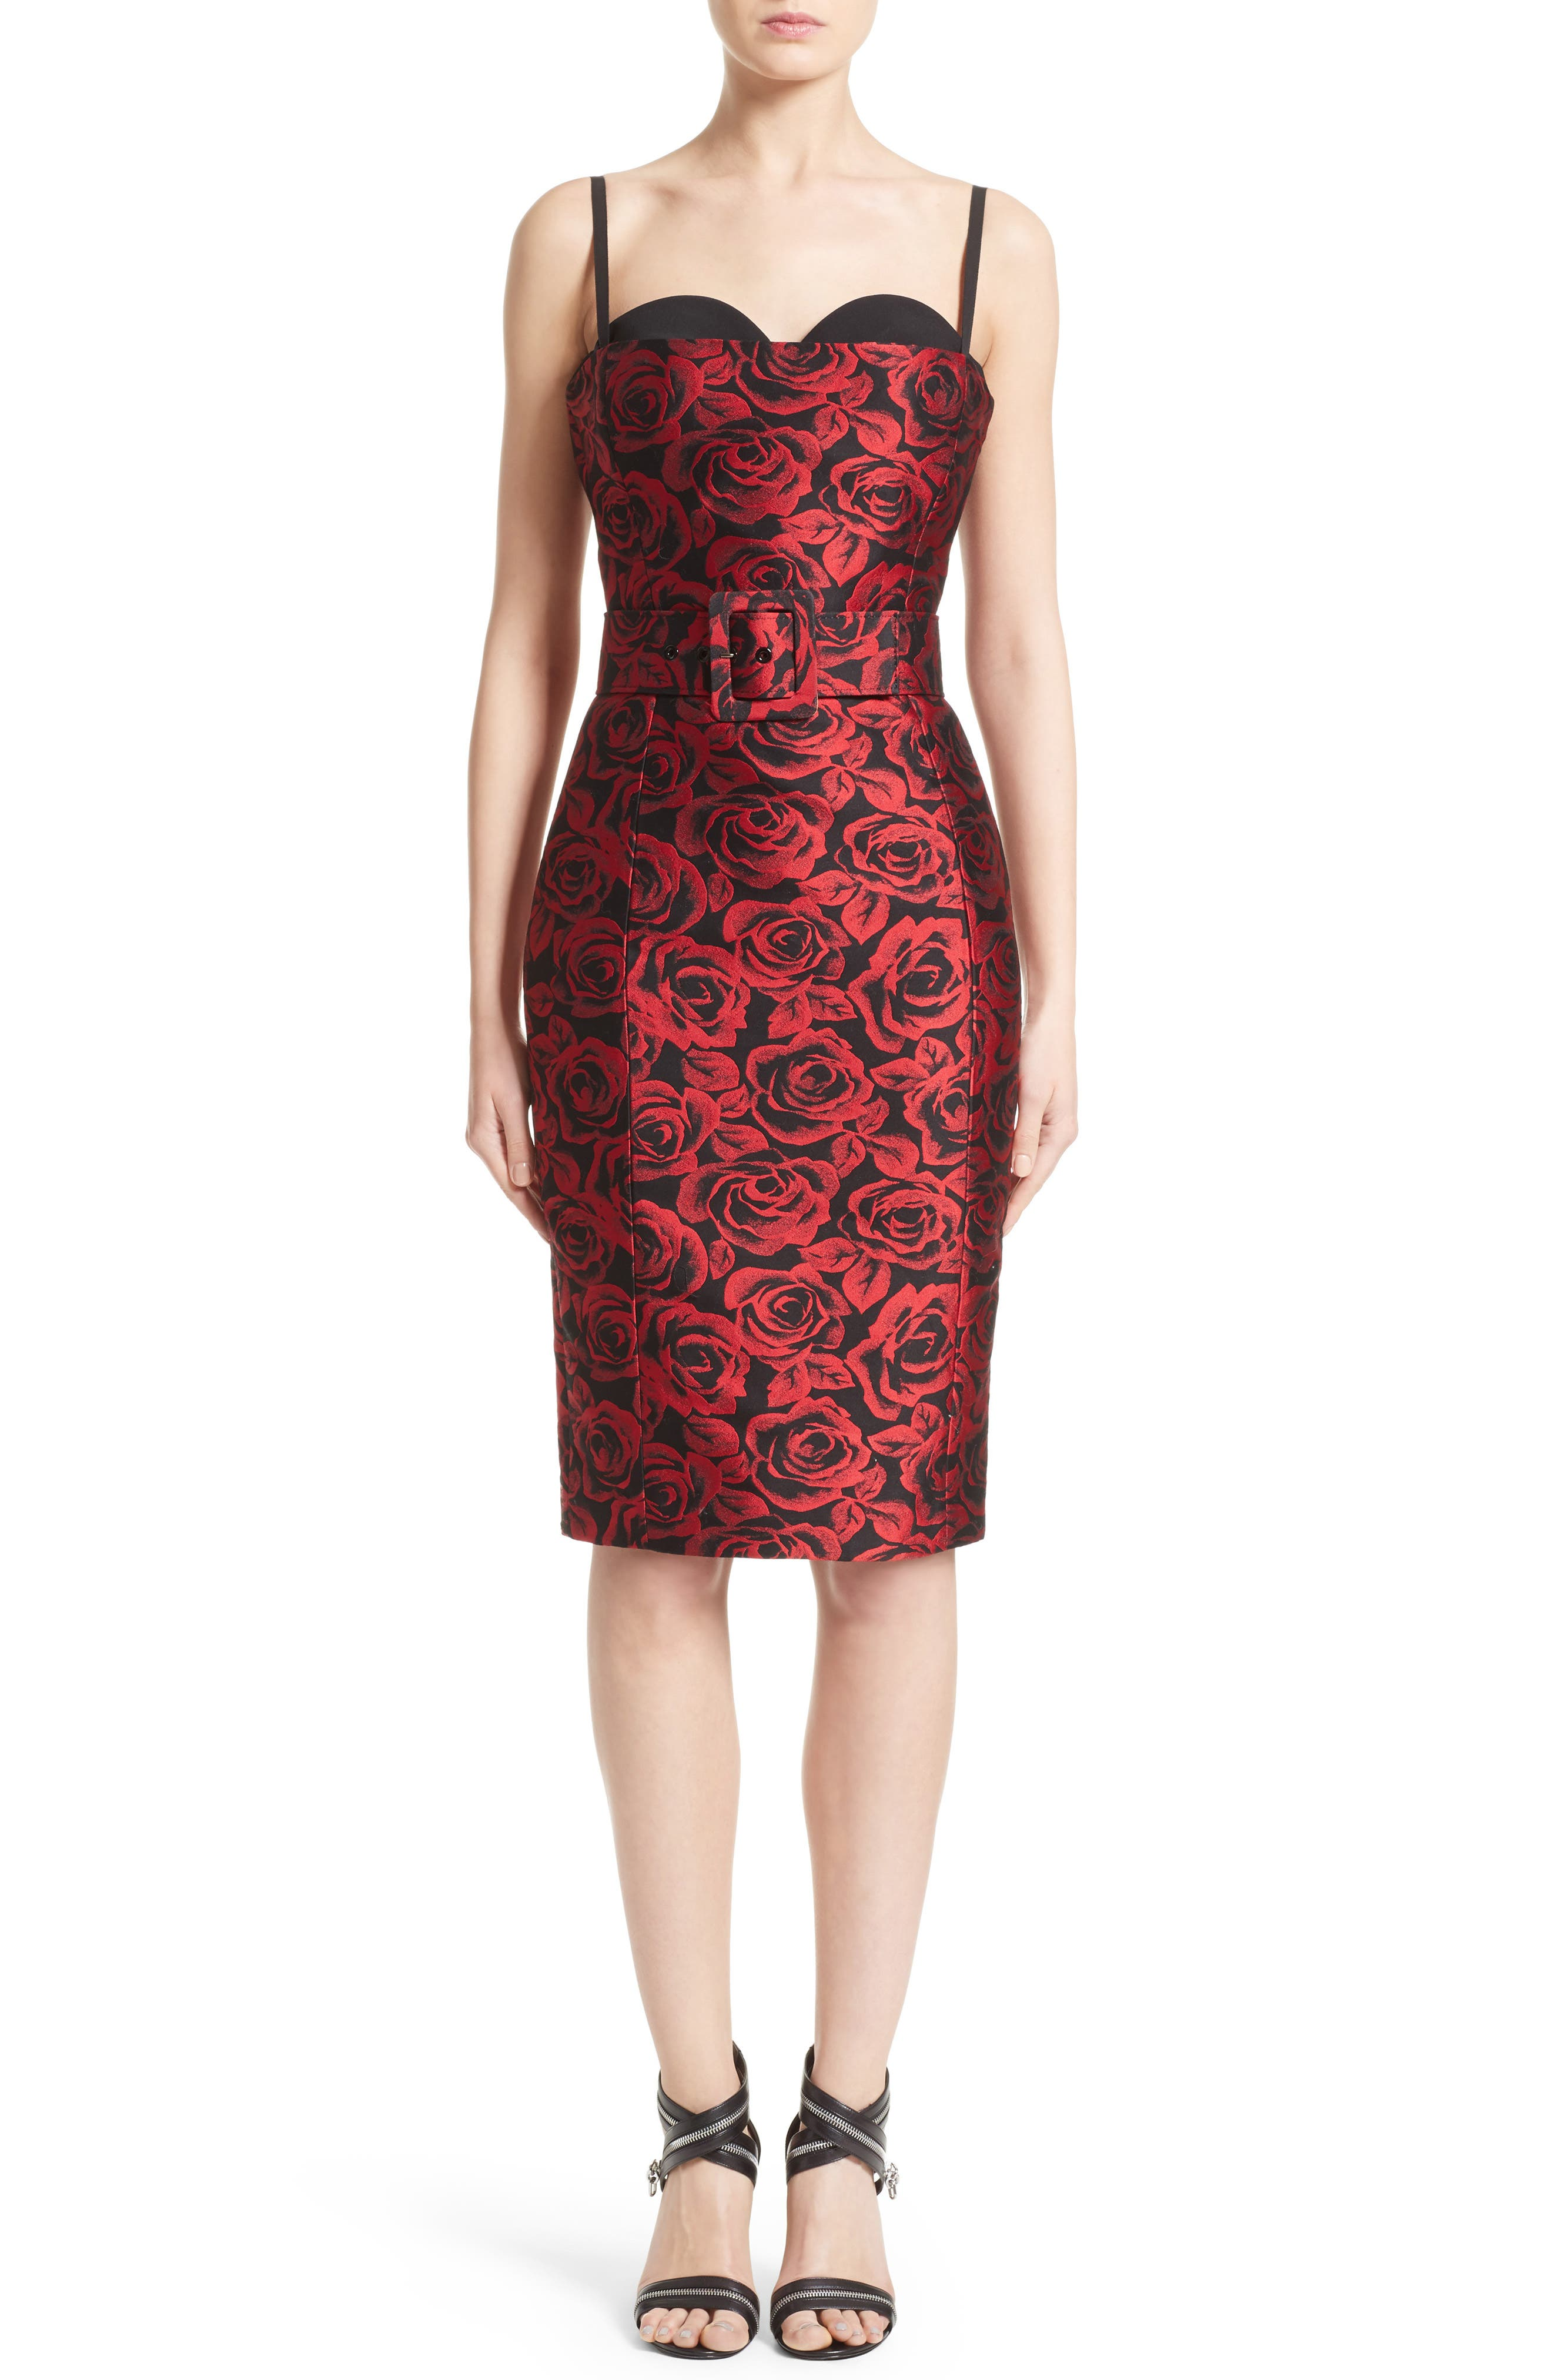 Michael Kors Rose Jacquard Bustier Sheath Dress